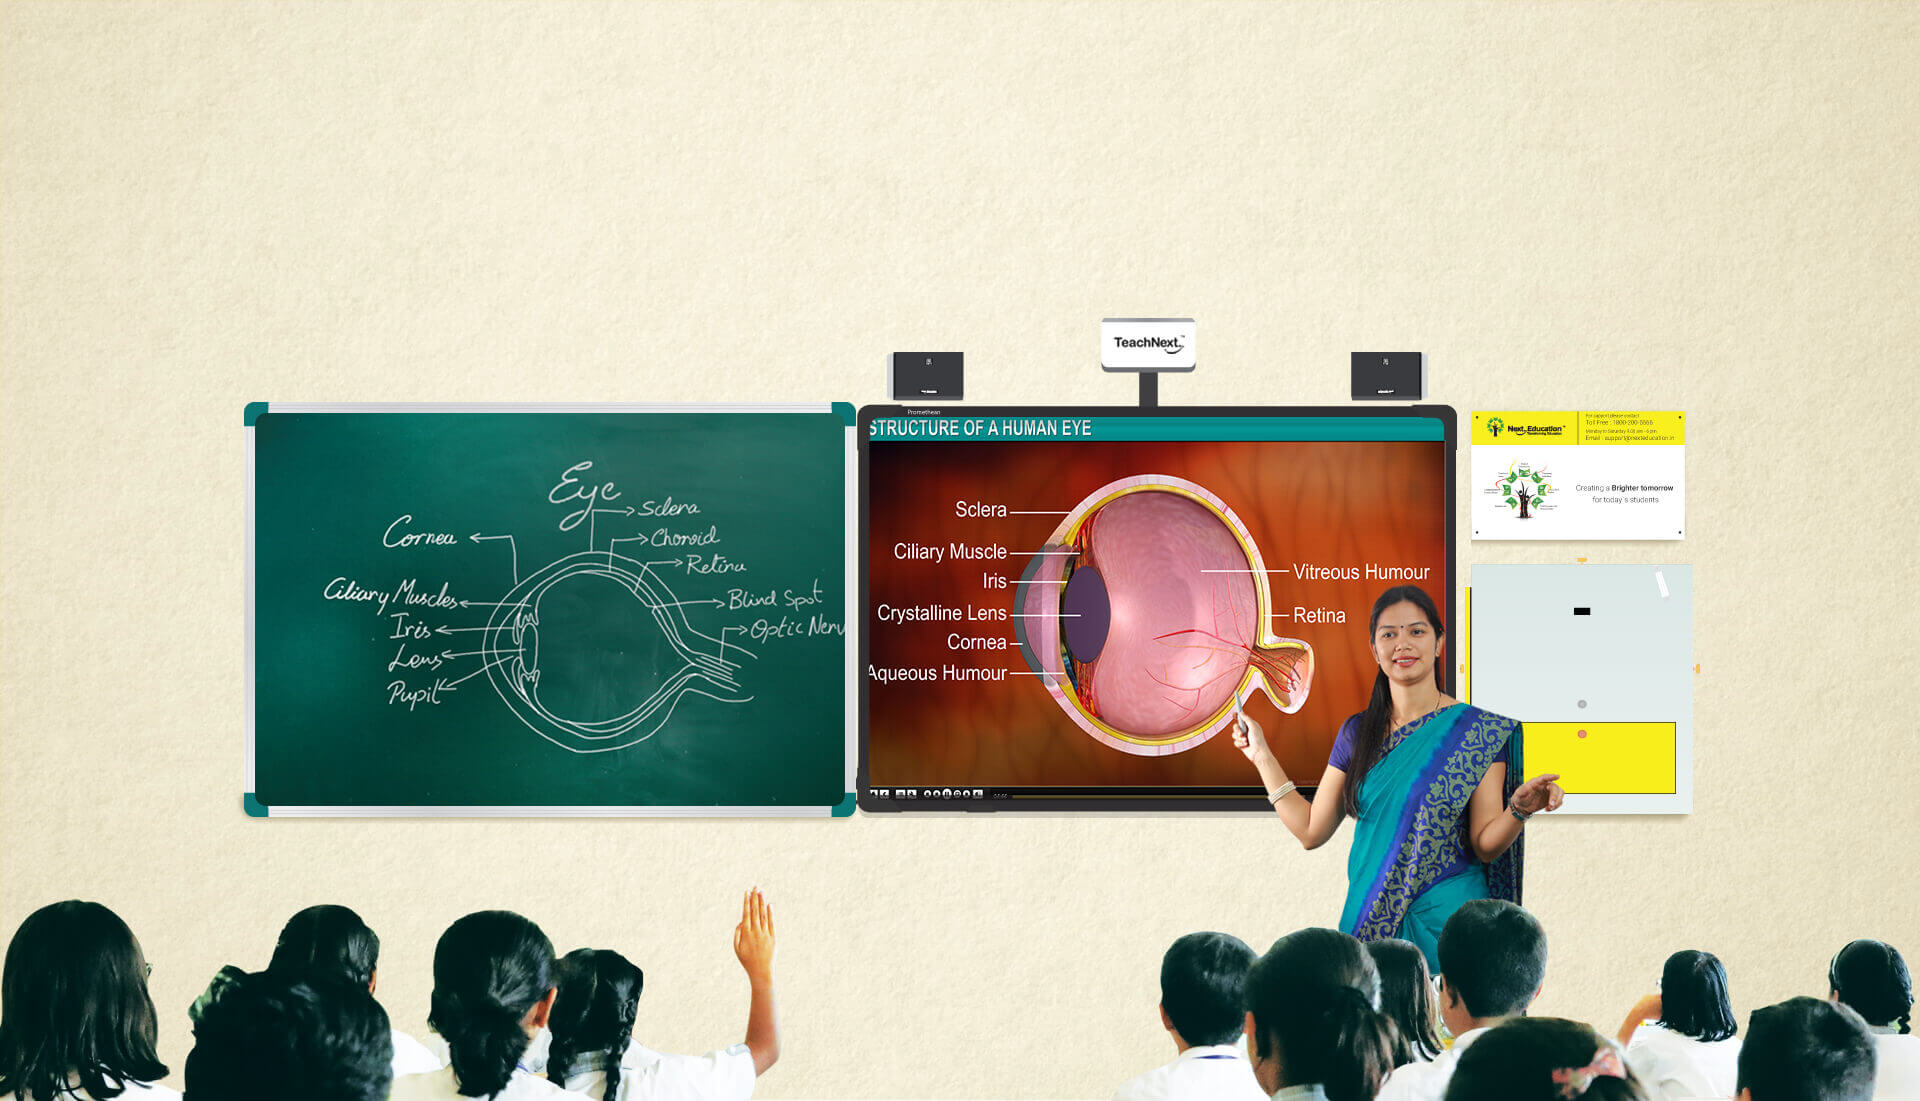 Top bannerg 8000 leading schools in india have revolutionised 60000 classrooms fandeluxe Choice Image